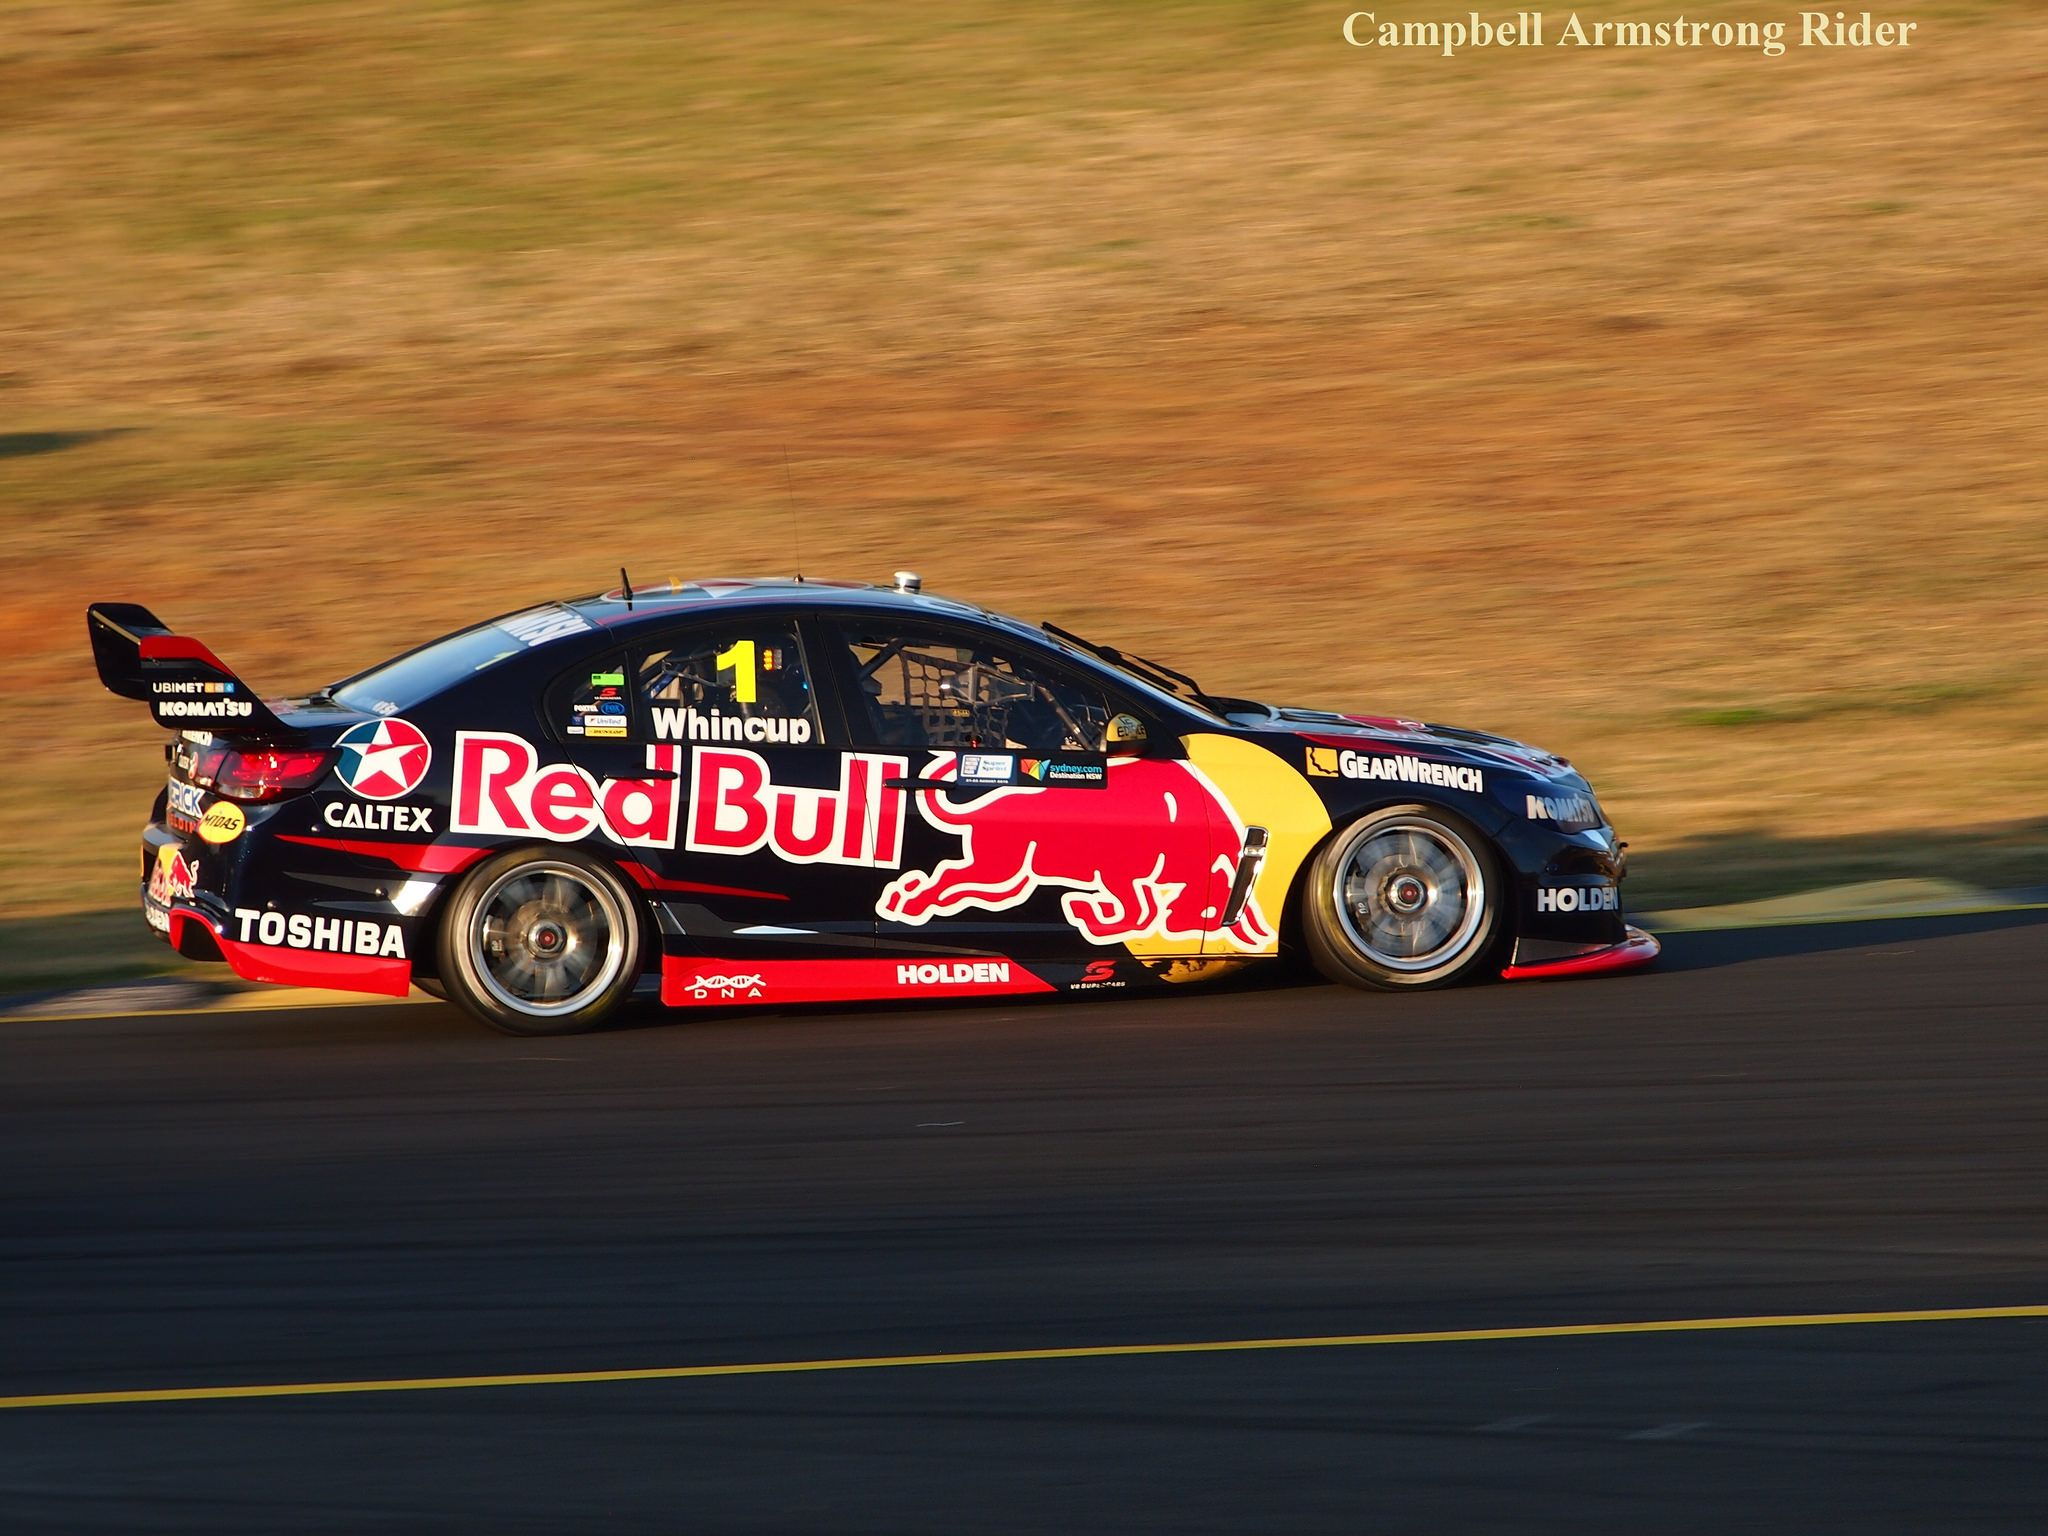 Pin By Andrew Gloistein On Red Bull Racing Red Bull Racing Super Cars V8 Supercars